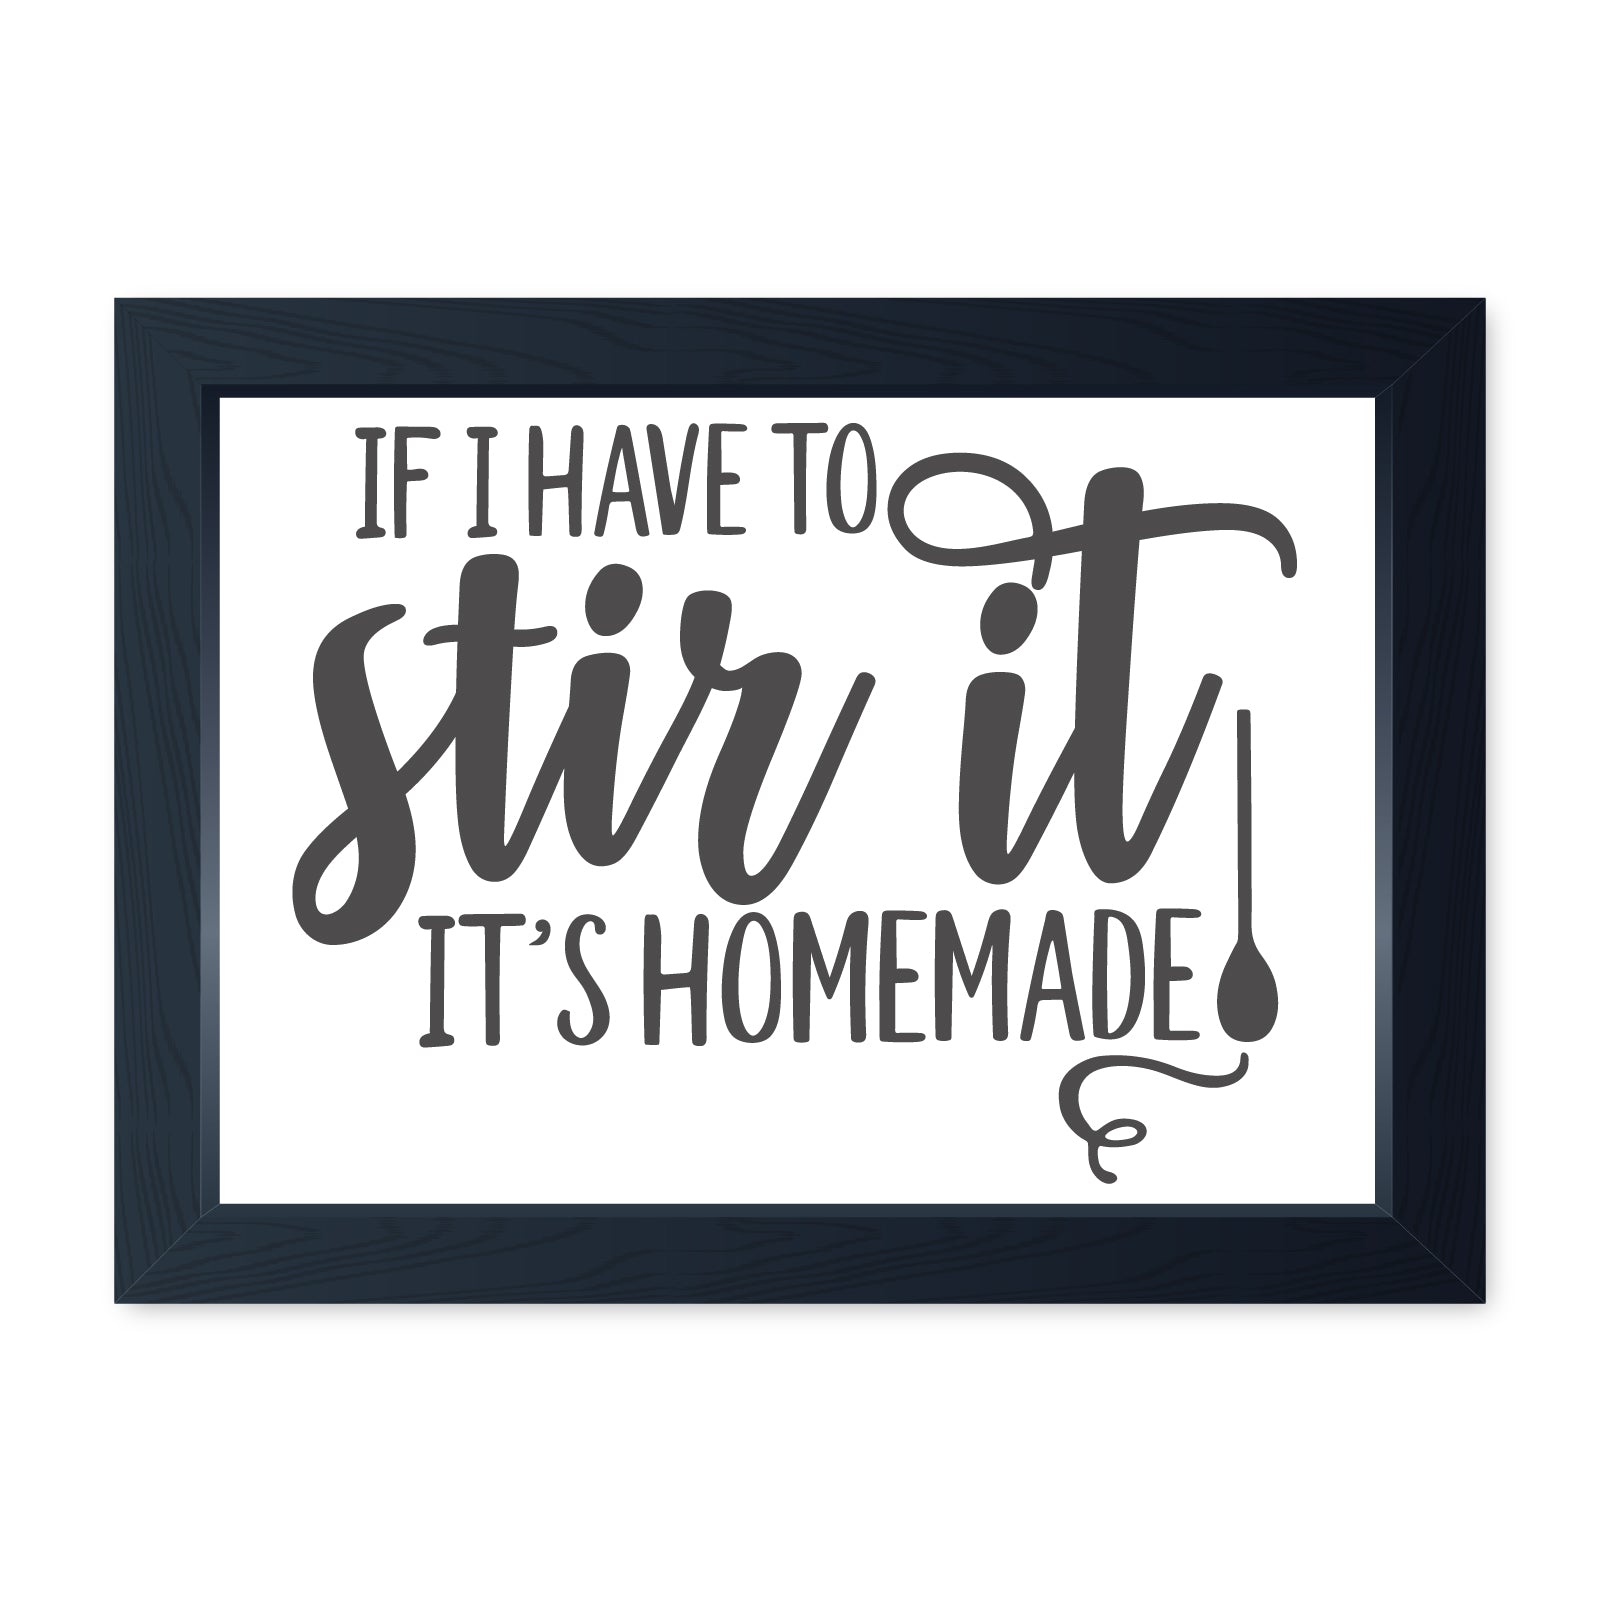 Stir It Homemade, Quality Framed Print - Home Kitchen Bake Cook Cafe